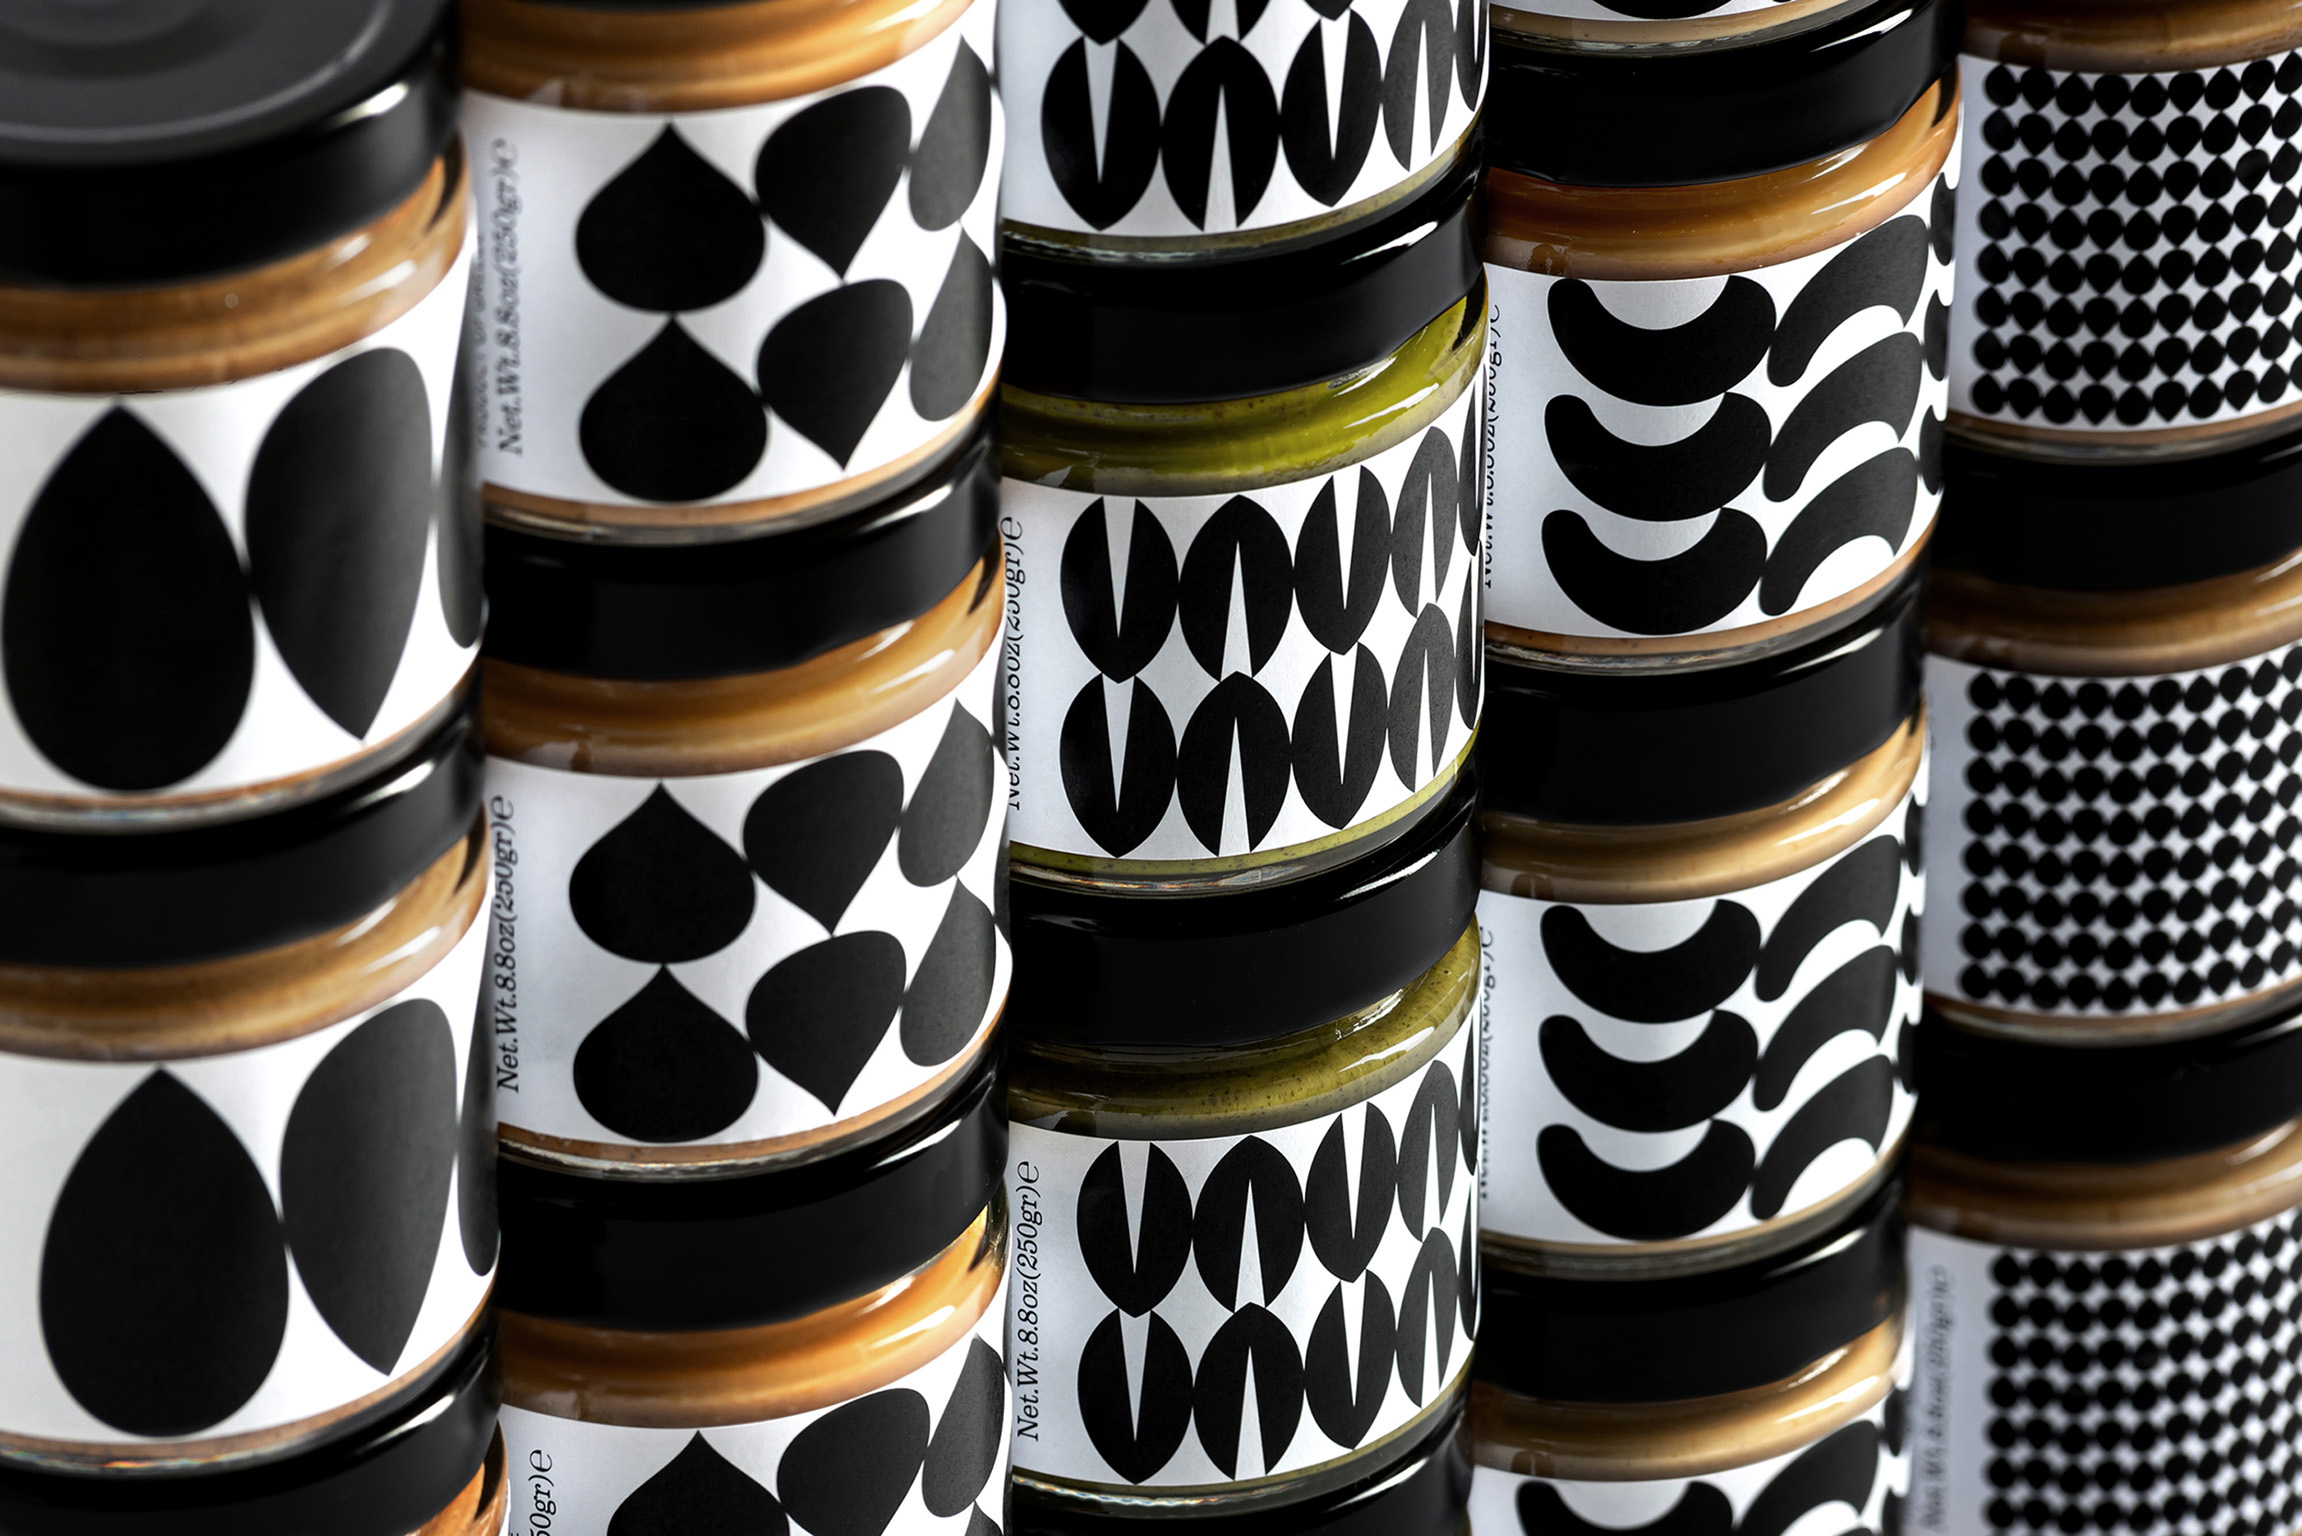 Eye Catching Packaging Design for Natural Nut Butters